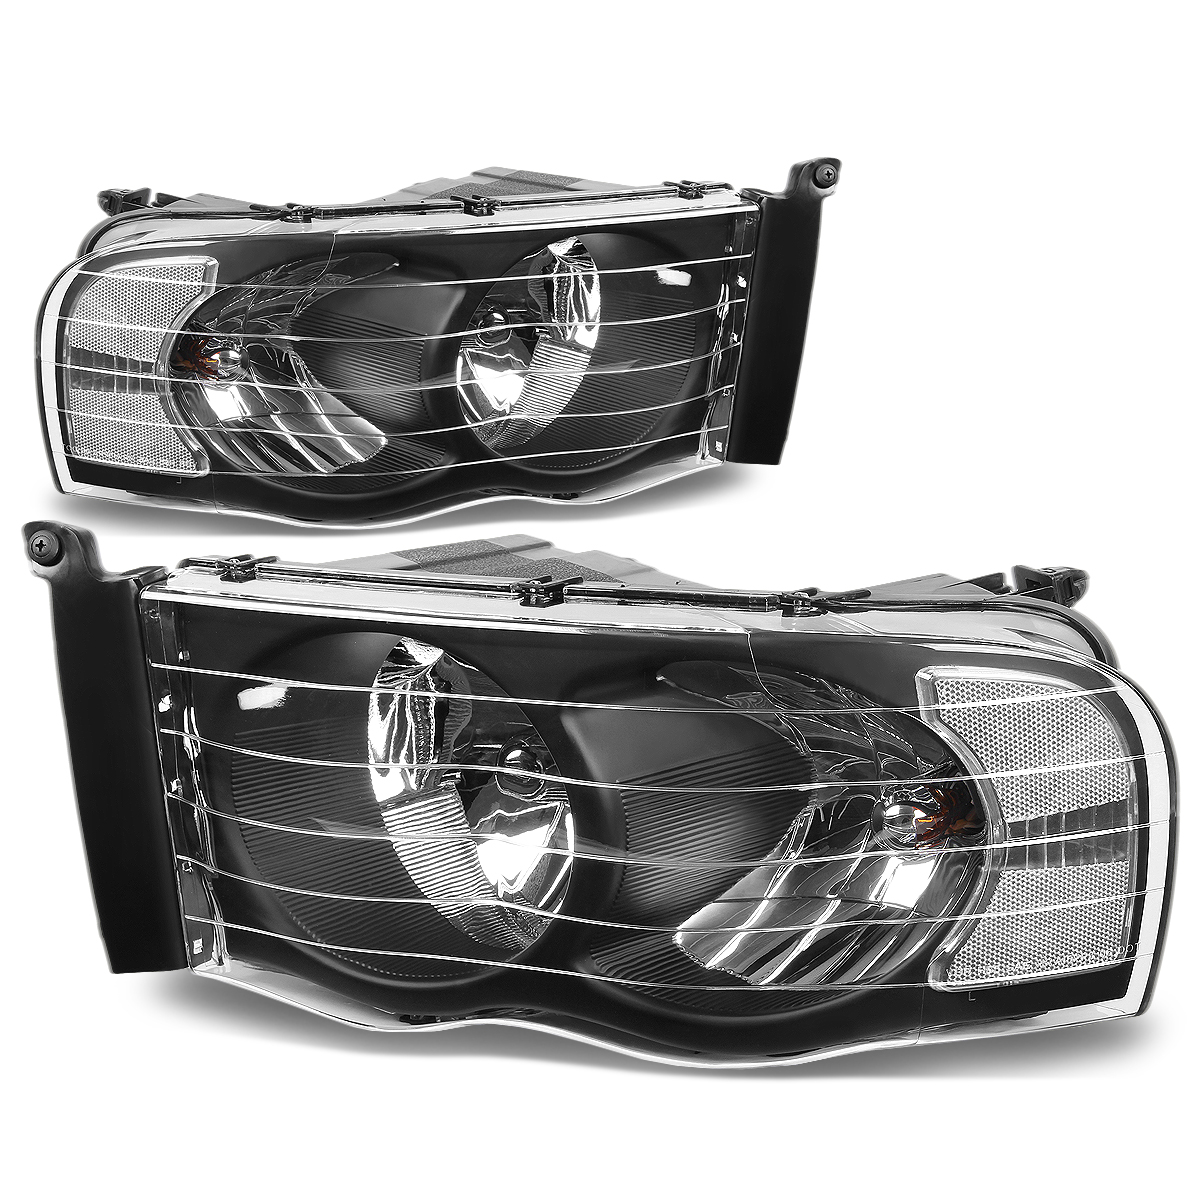 For 02-05 Dodge Ram Pair of Black Housing HeadLight Head Lamp Light - 3rd Gen DR/DH/D1/DC/DM 03 04